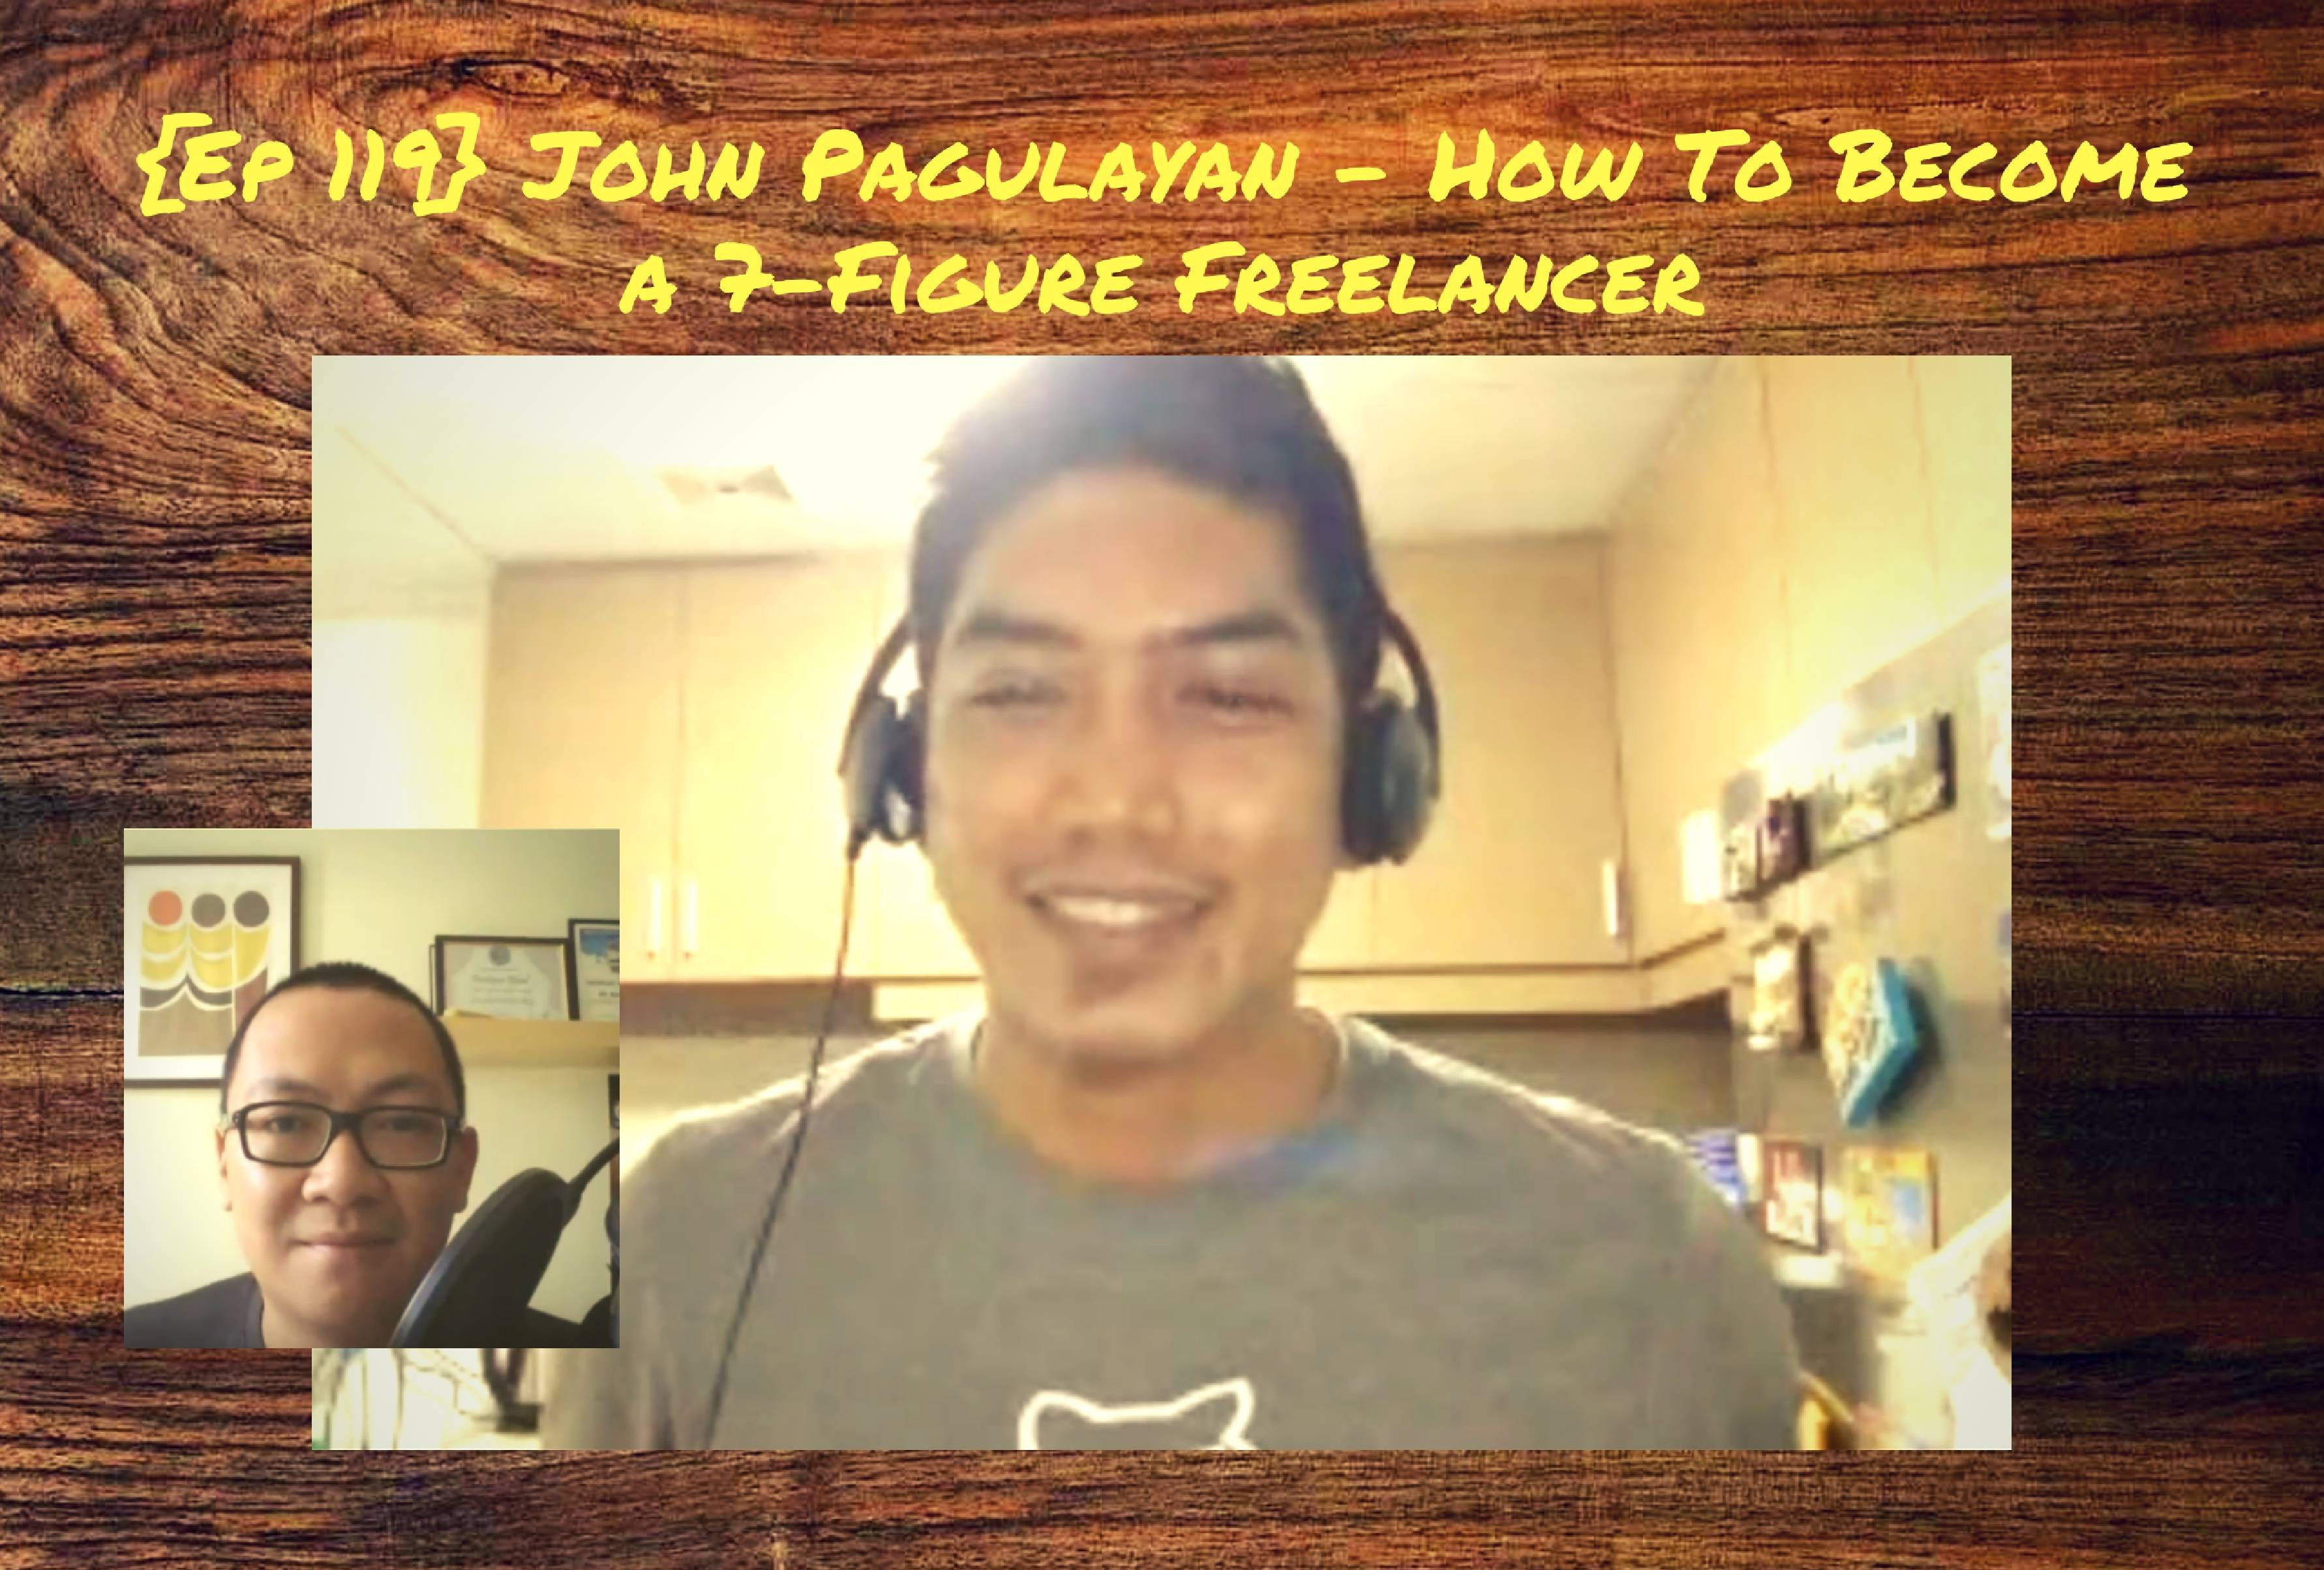 rsz_fbp119-john-pagulayan-interview-freelance-blend